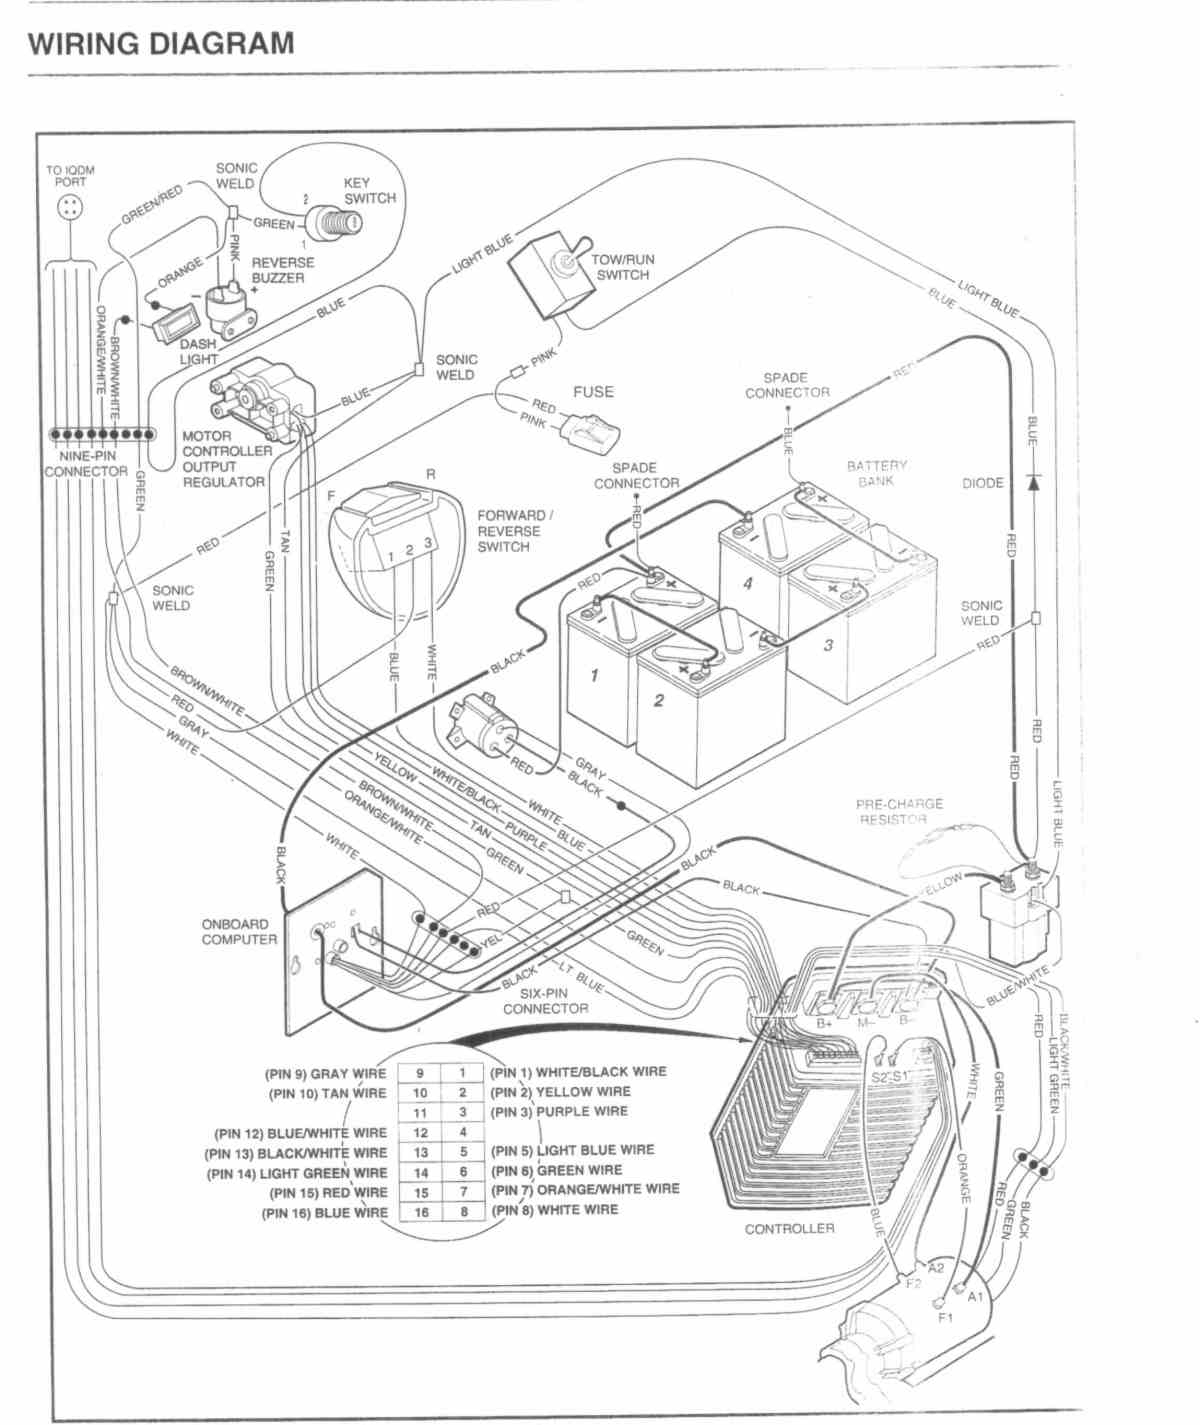 yamaha g1 electric golf cart wiring diagram best g2 ezgo rear axle